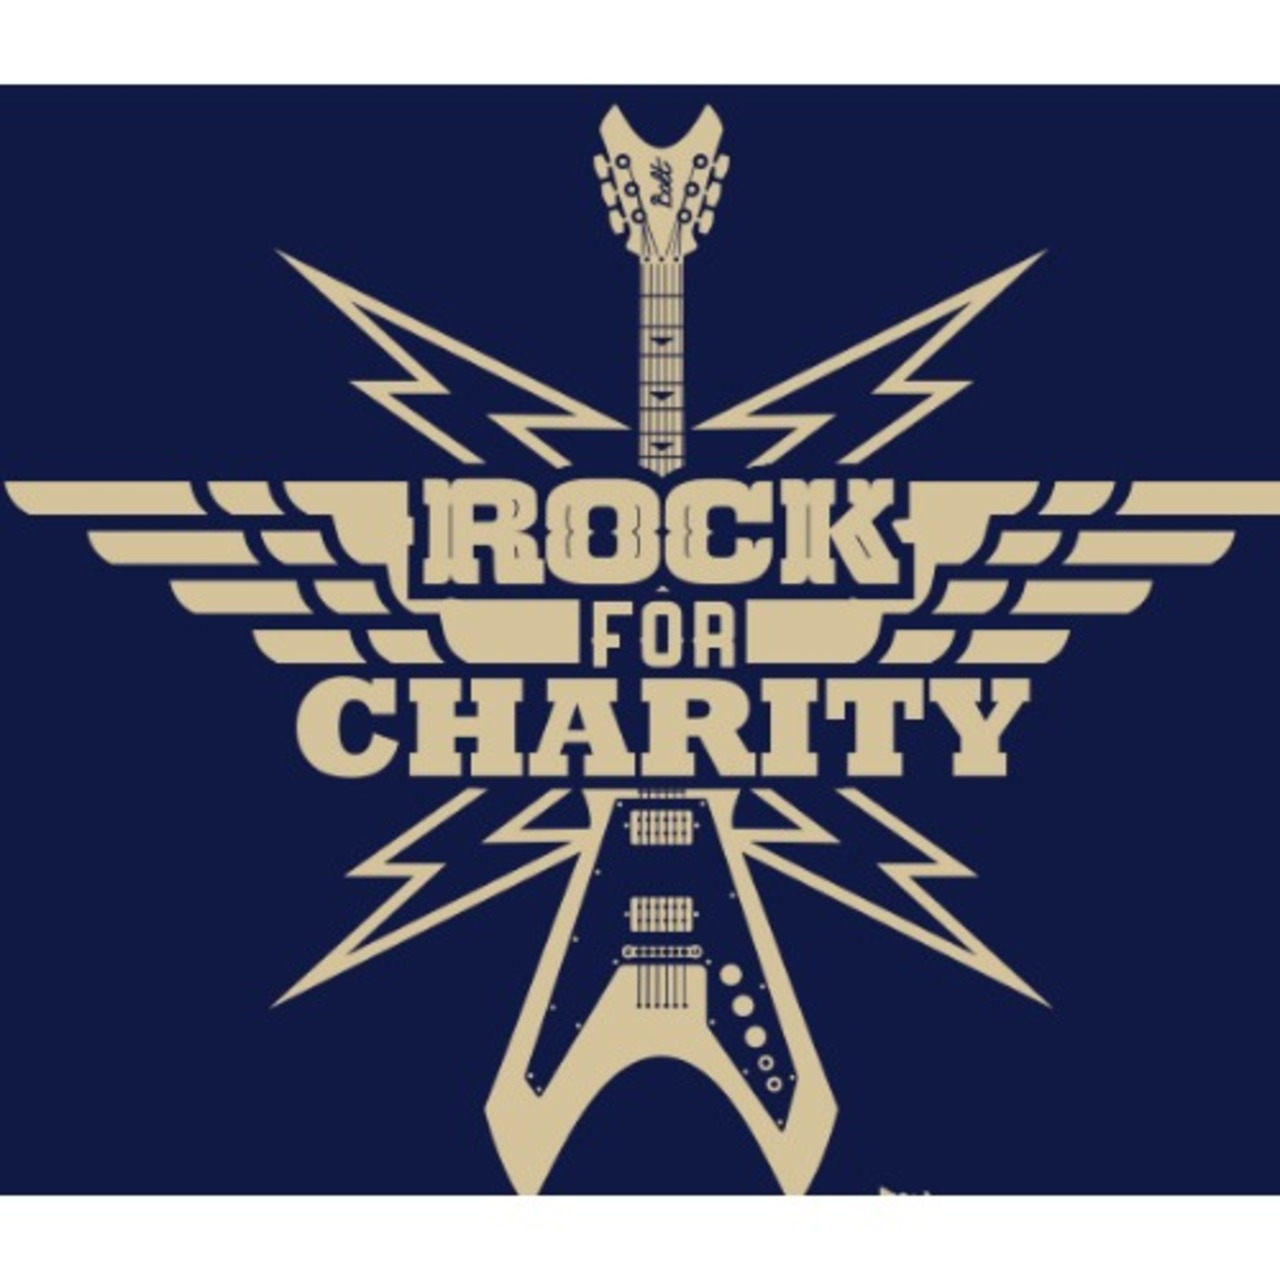 IICF Midwest Division Rock for Charity